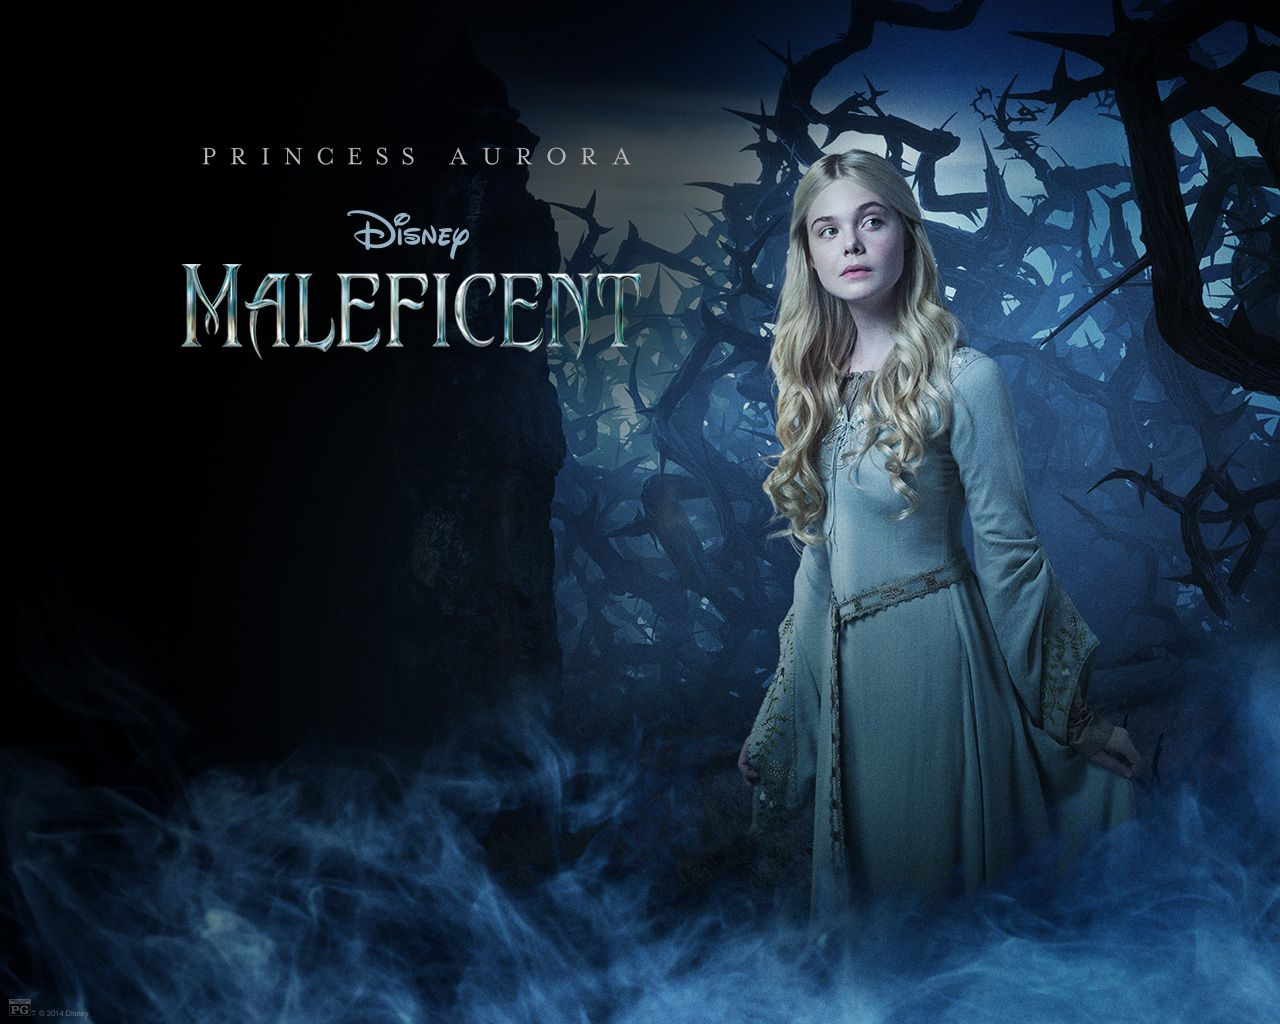 Maleficent Costume Designer More Realistic Princess Aurora